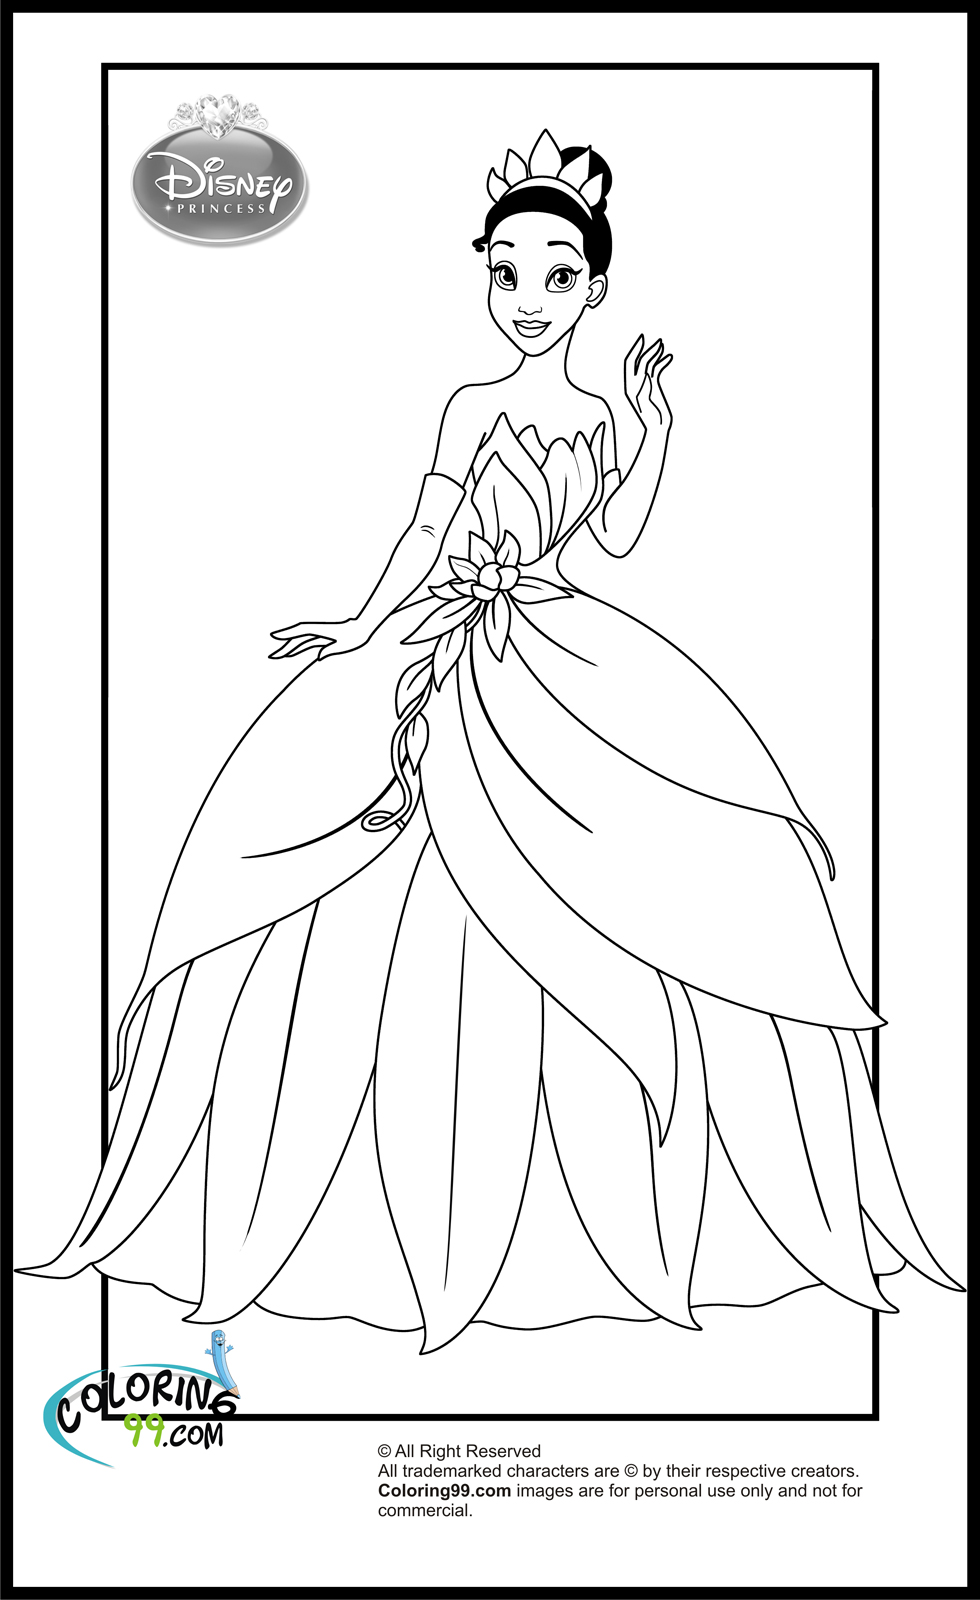 disney princess coloring pages free - Play Disney Princess Online Coloring game online Y8